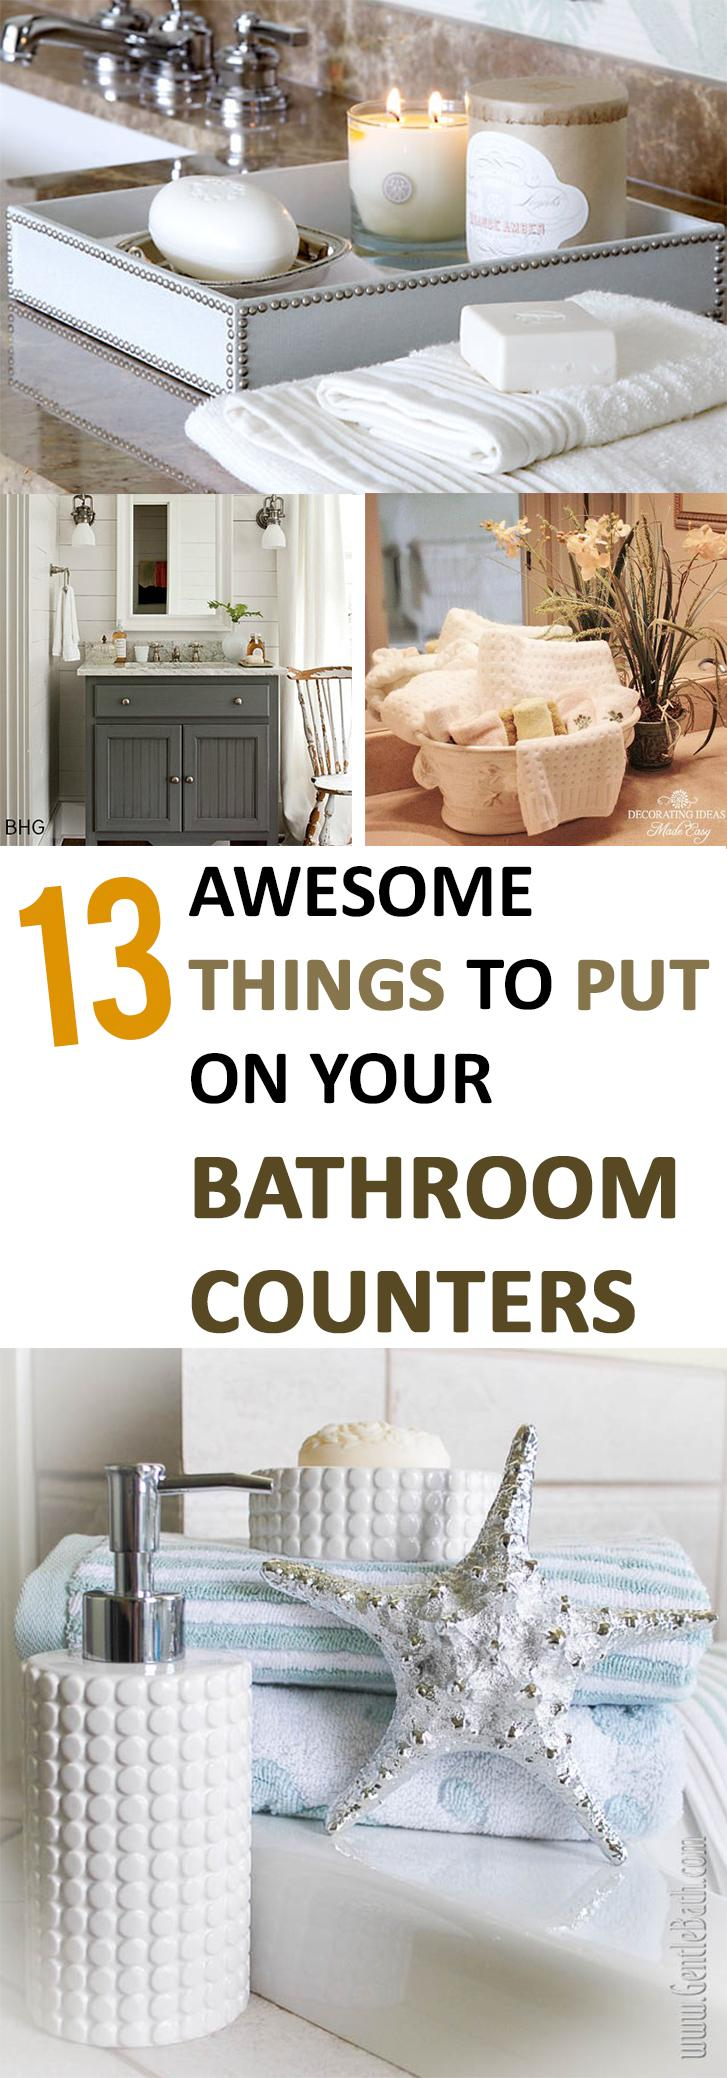 2. awesome things to put on your bathroom couters by simphome.com